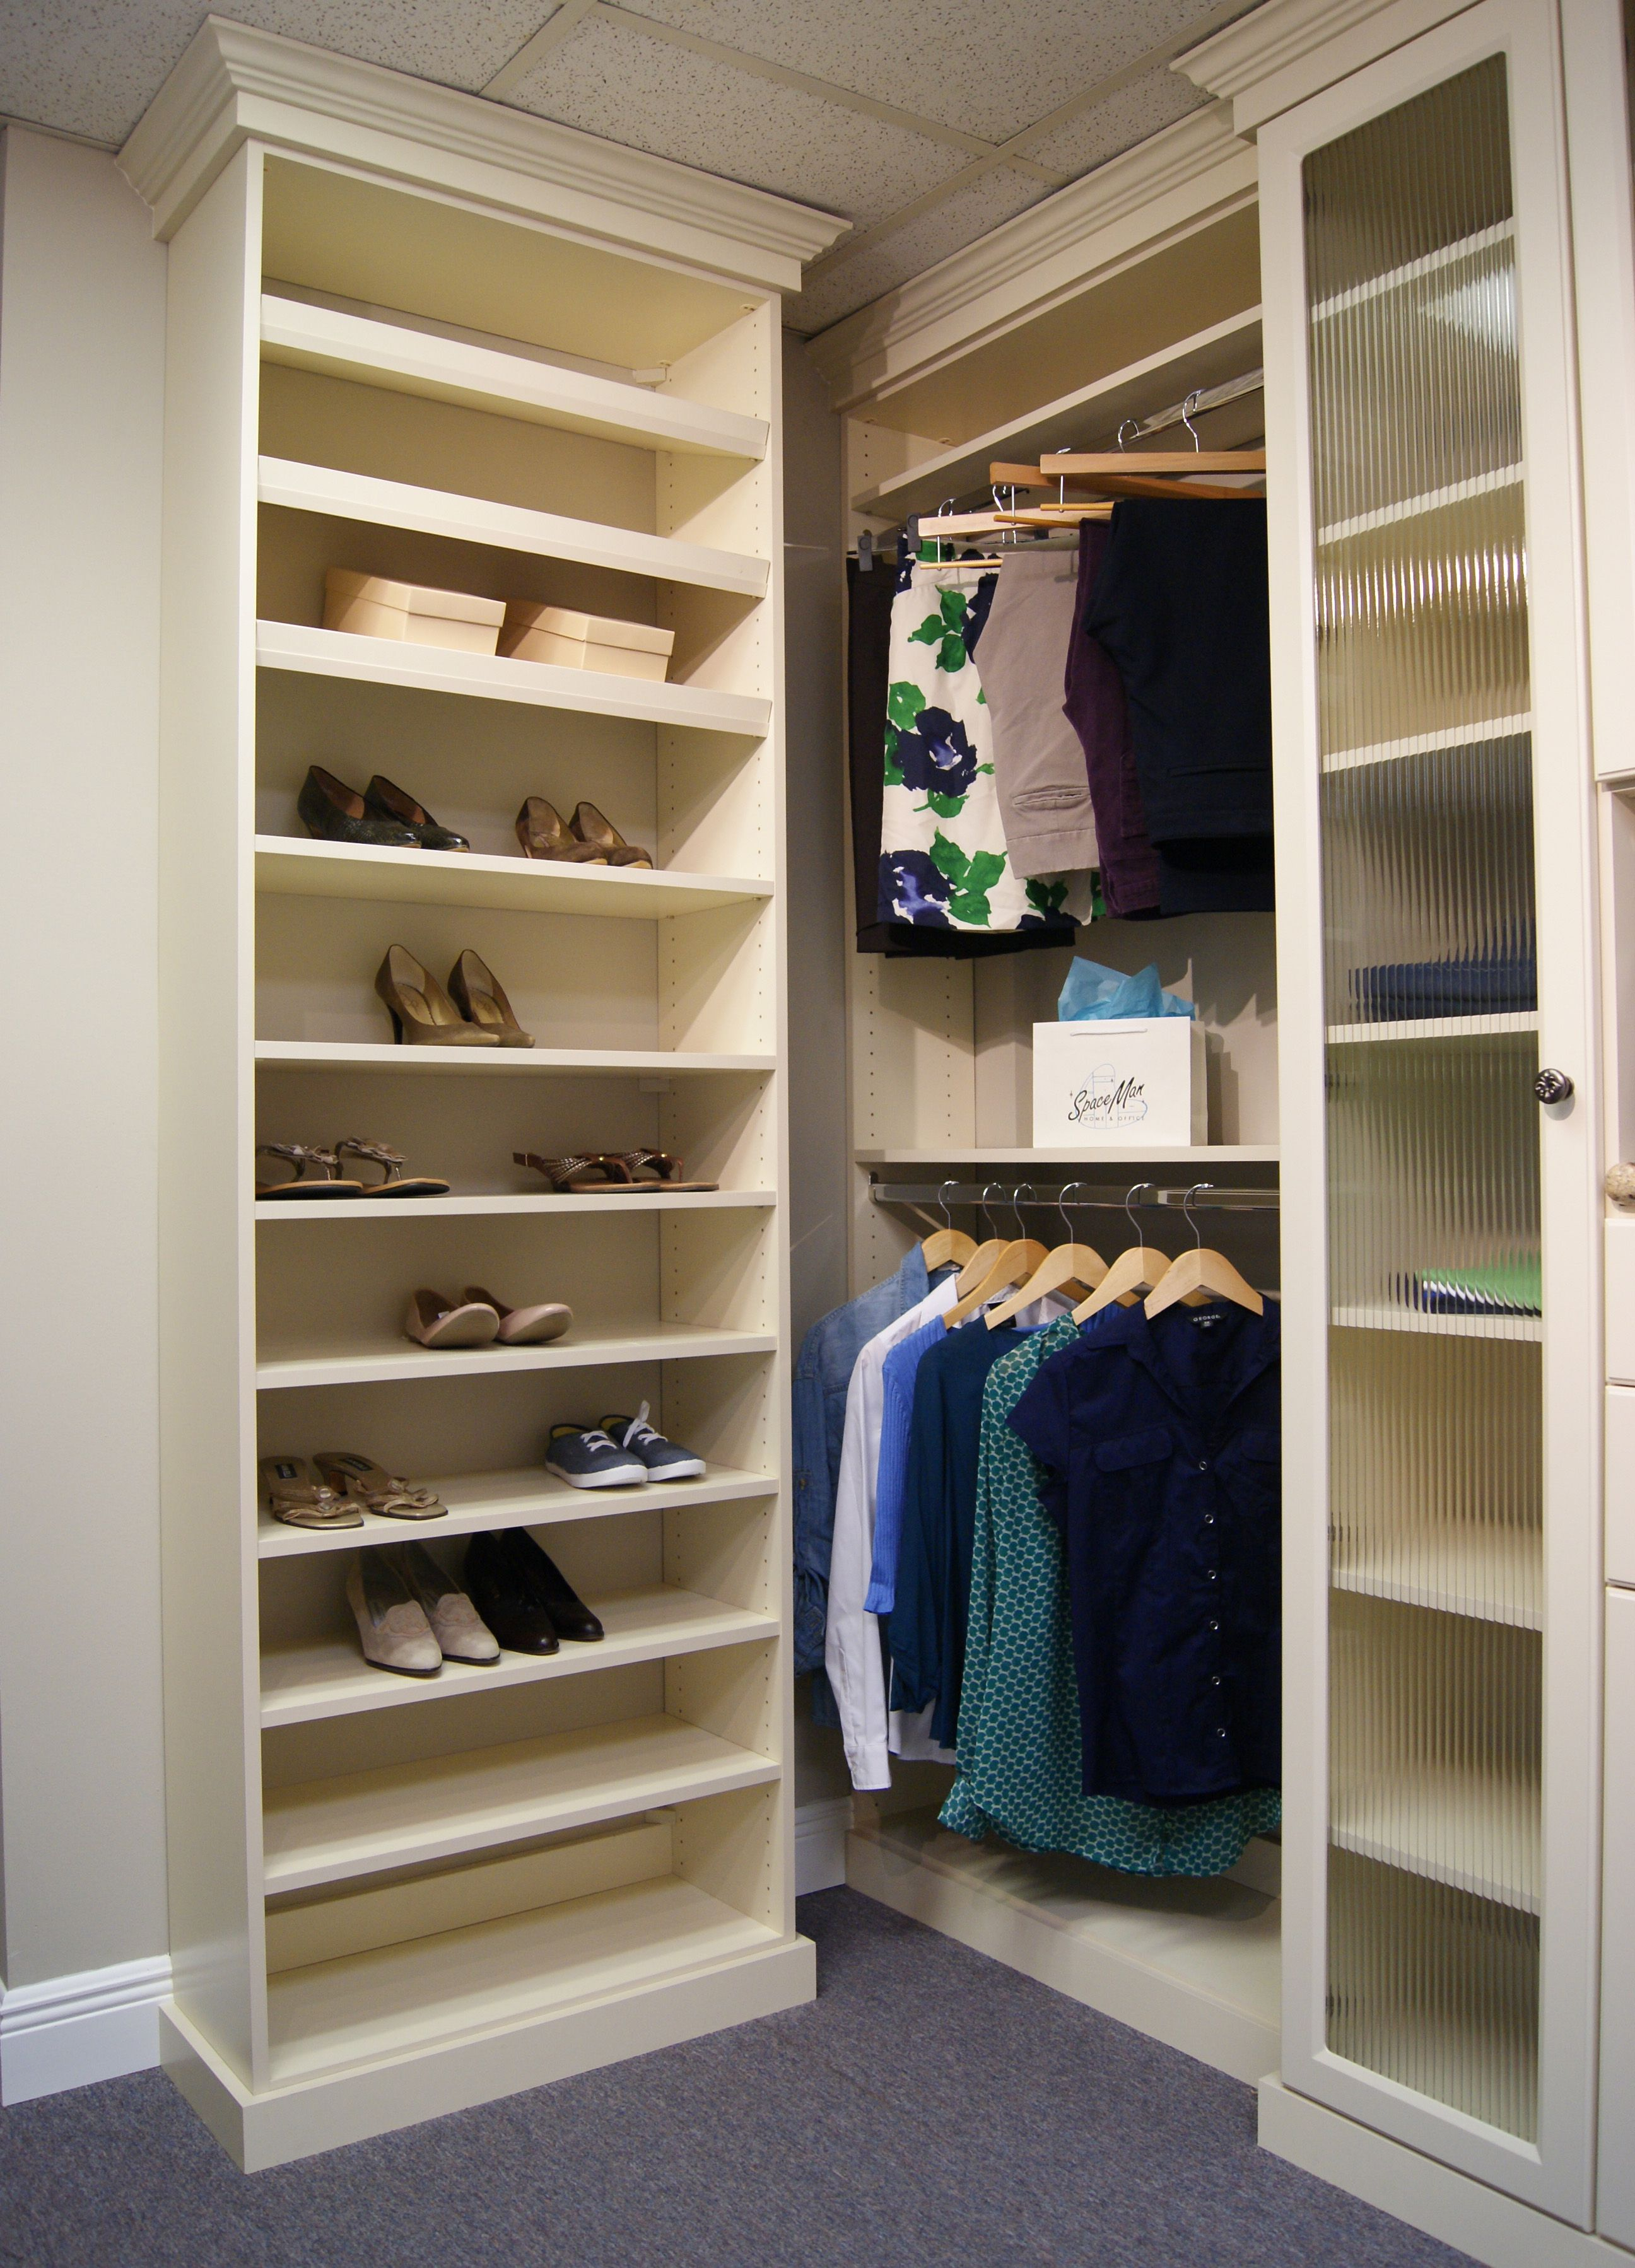 Shoe shelving in this custom closet includes a bination of